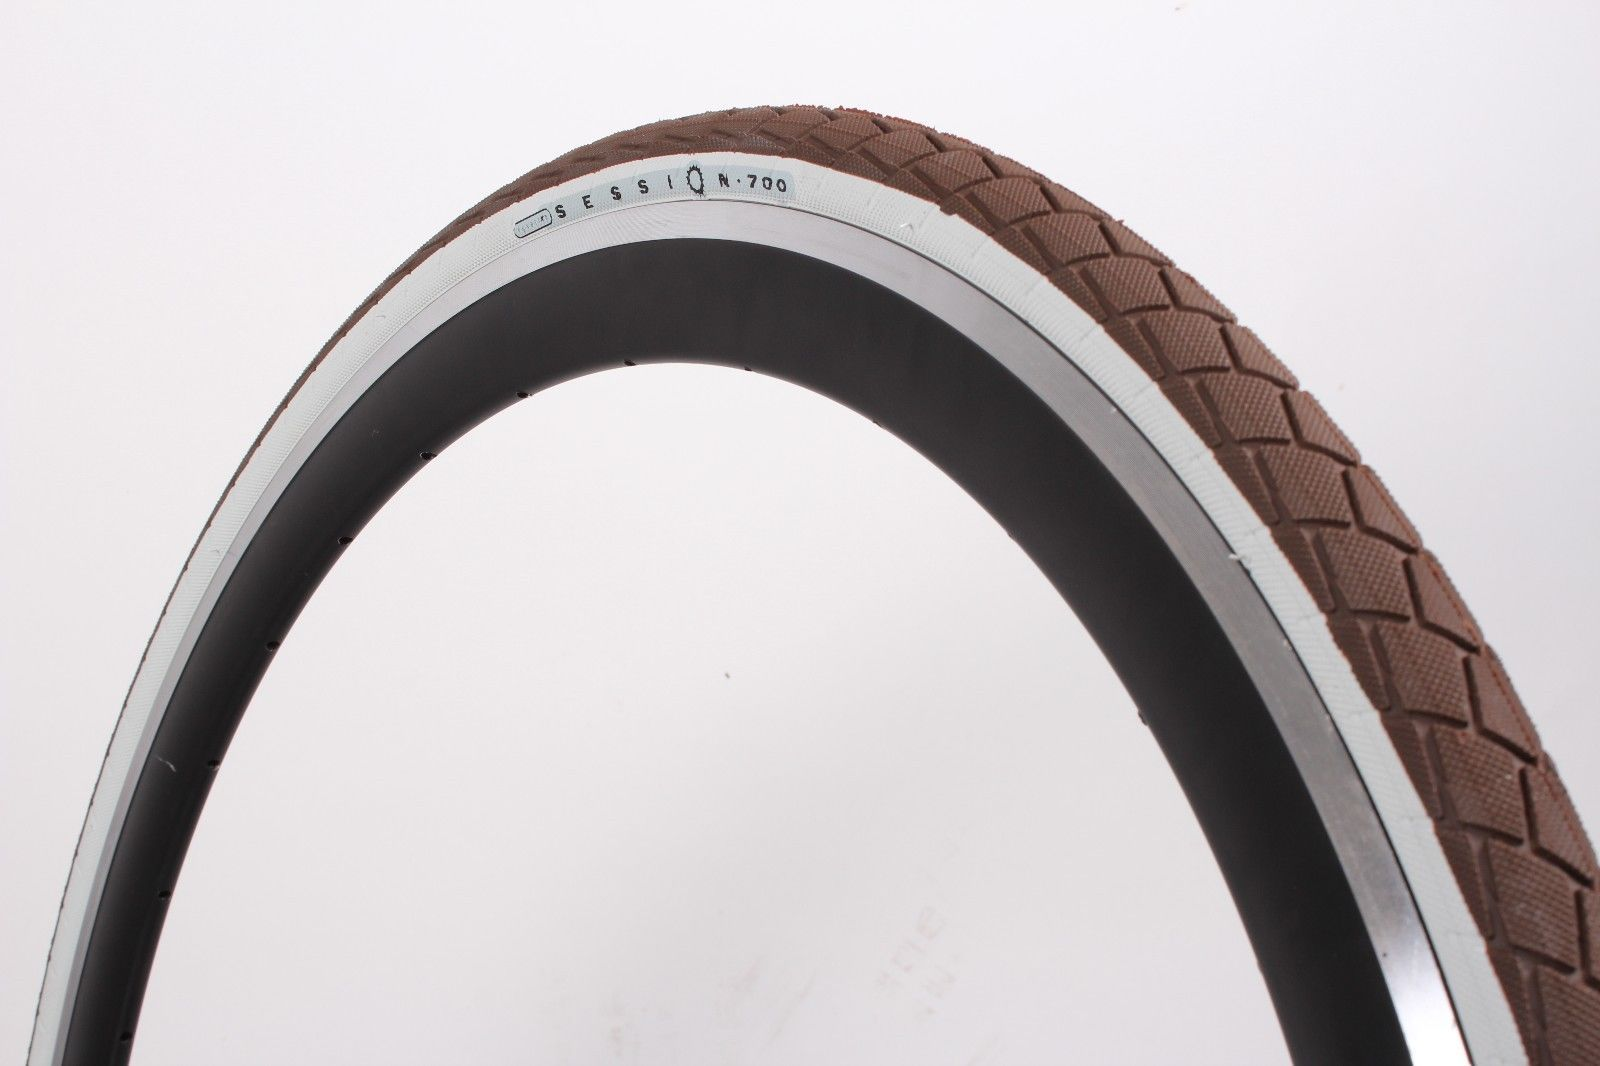 Wanda G5013 700C x 28 Bike Tires Urban Hybrid Slick Commuter CHOCOLATE BROWN